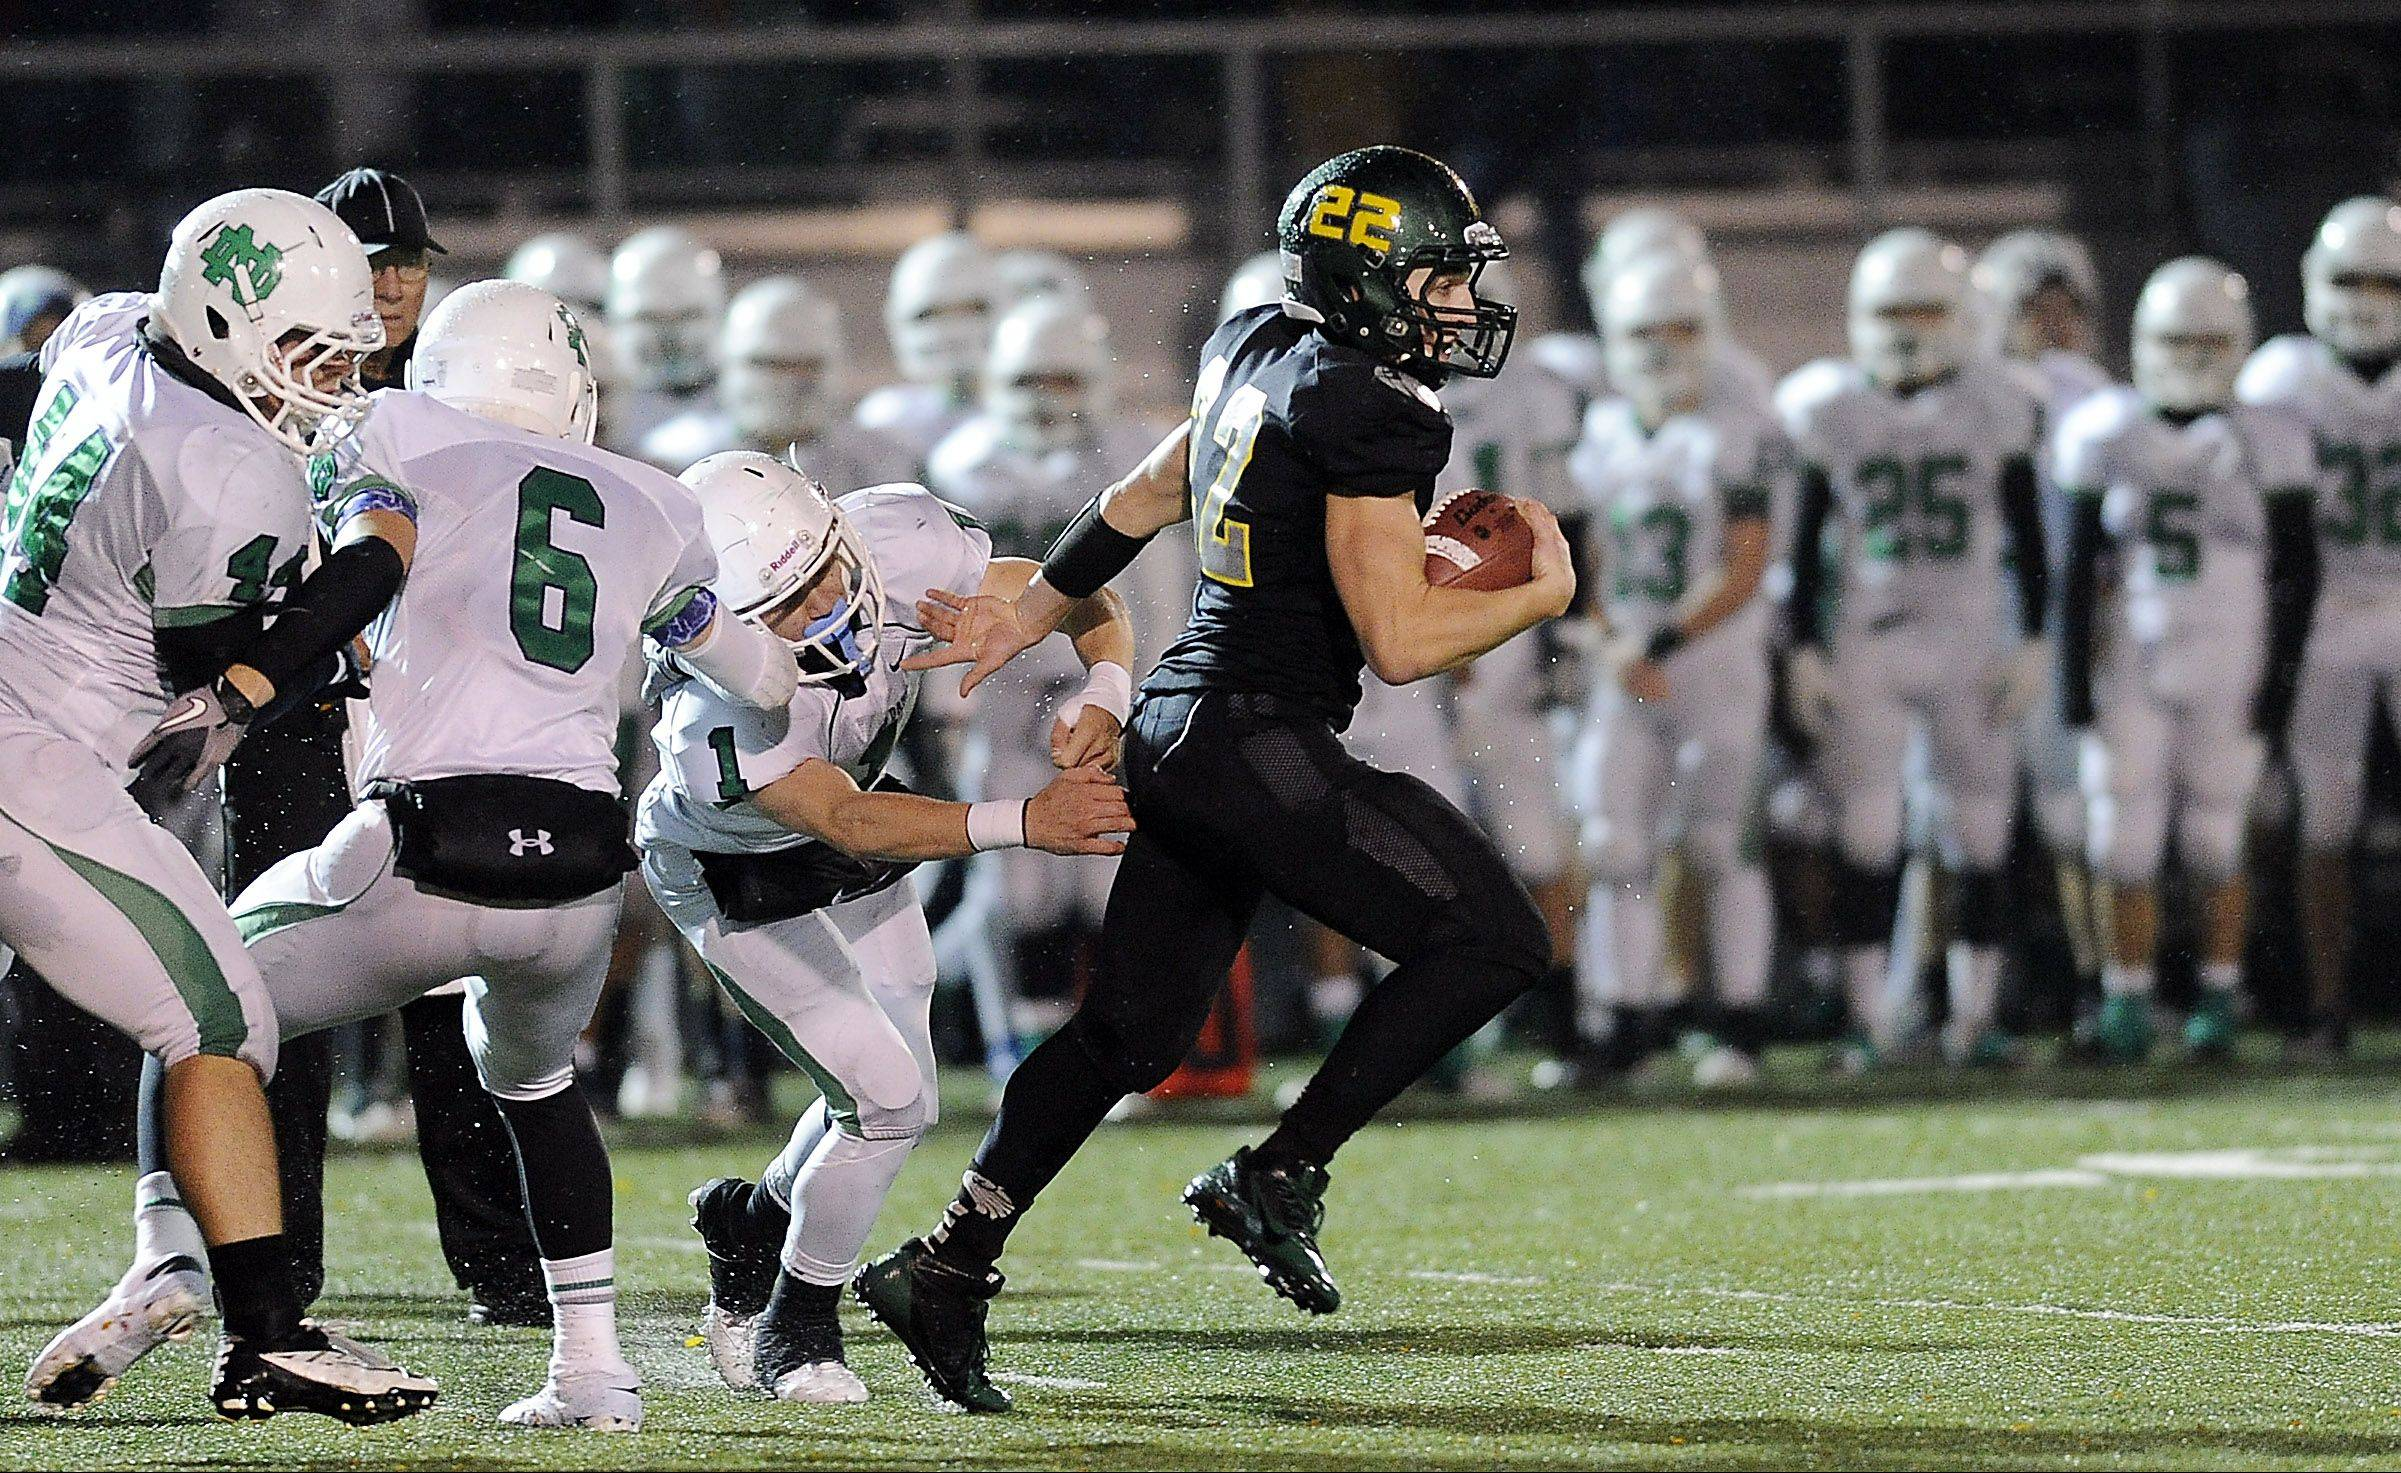 Fremd's Garrett Groot scrambles for a 44-yard run in the second quarter against Notre Dame in Class 8A playoffs action at Fremd on Friday.